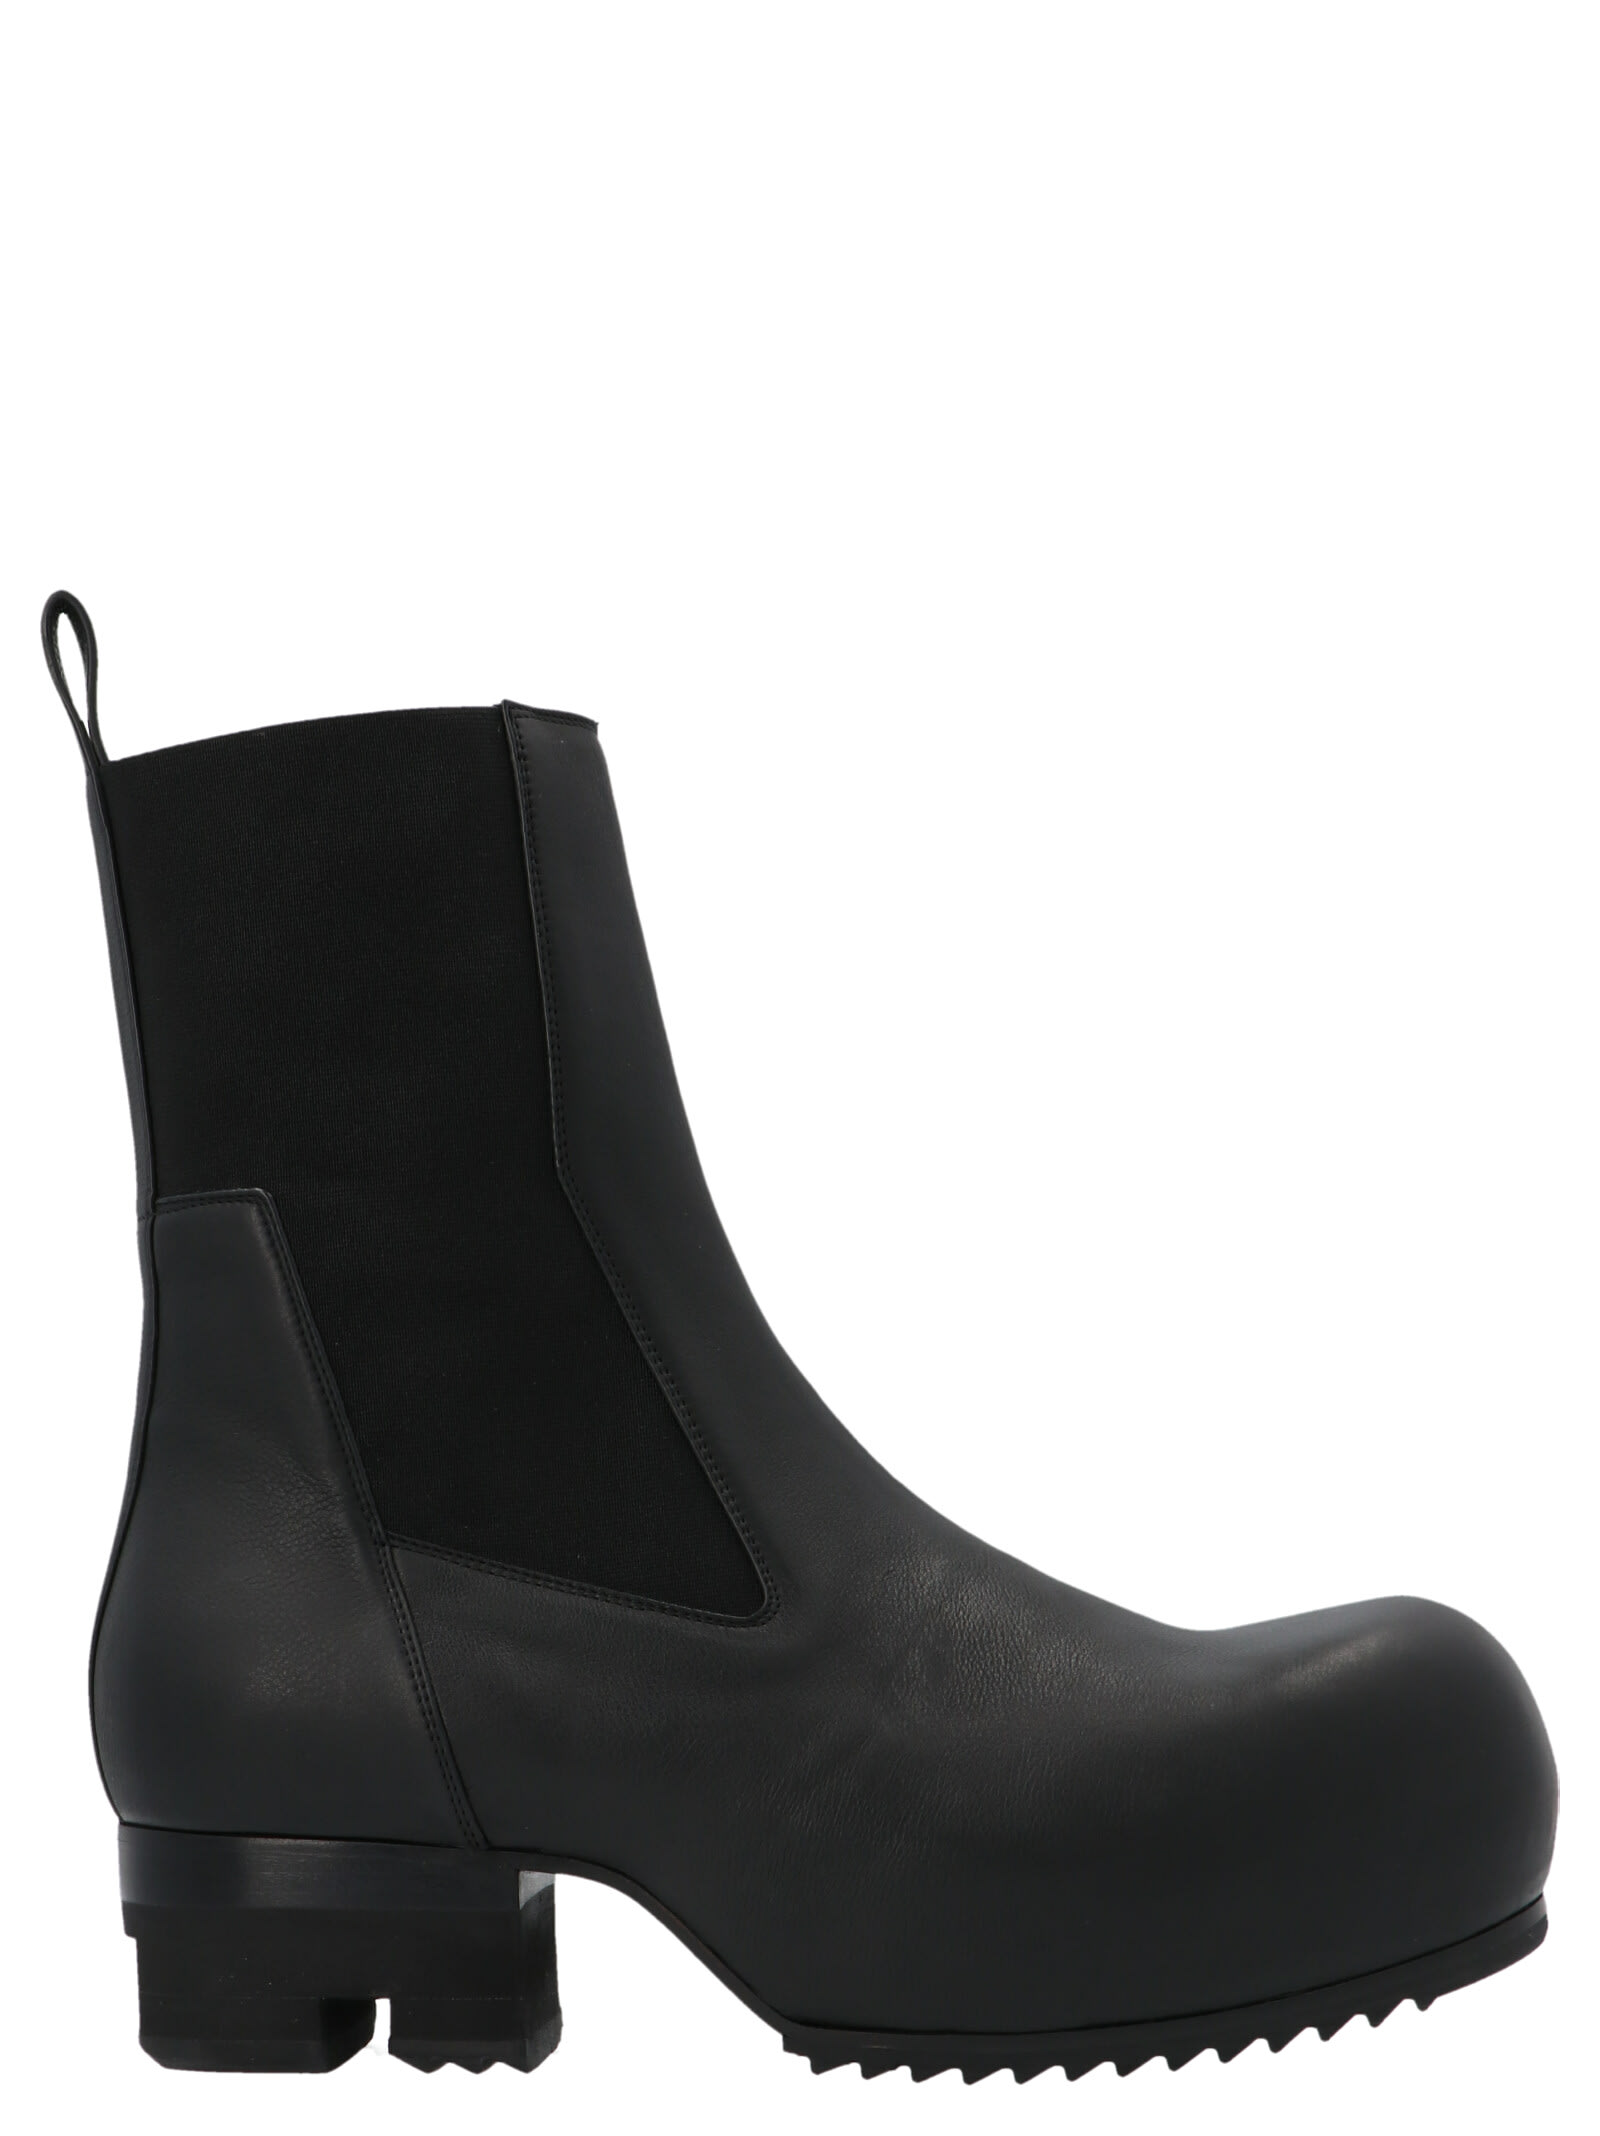 Rick Owens BEATLE FILED BOOT SHOES